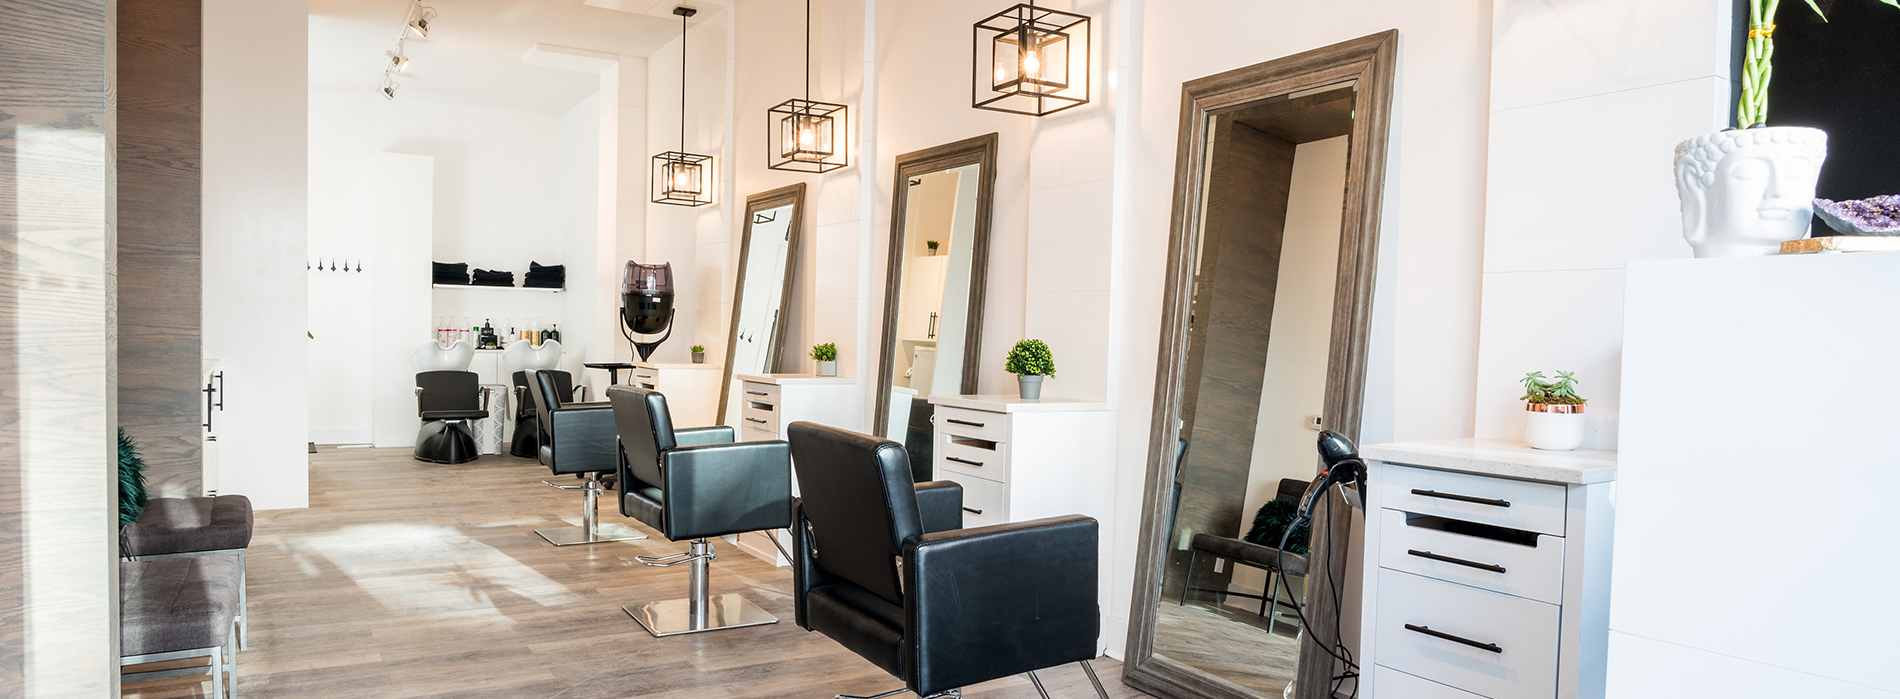 17th Ave Hair Salon Calgary